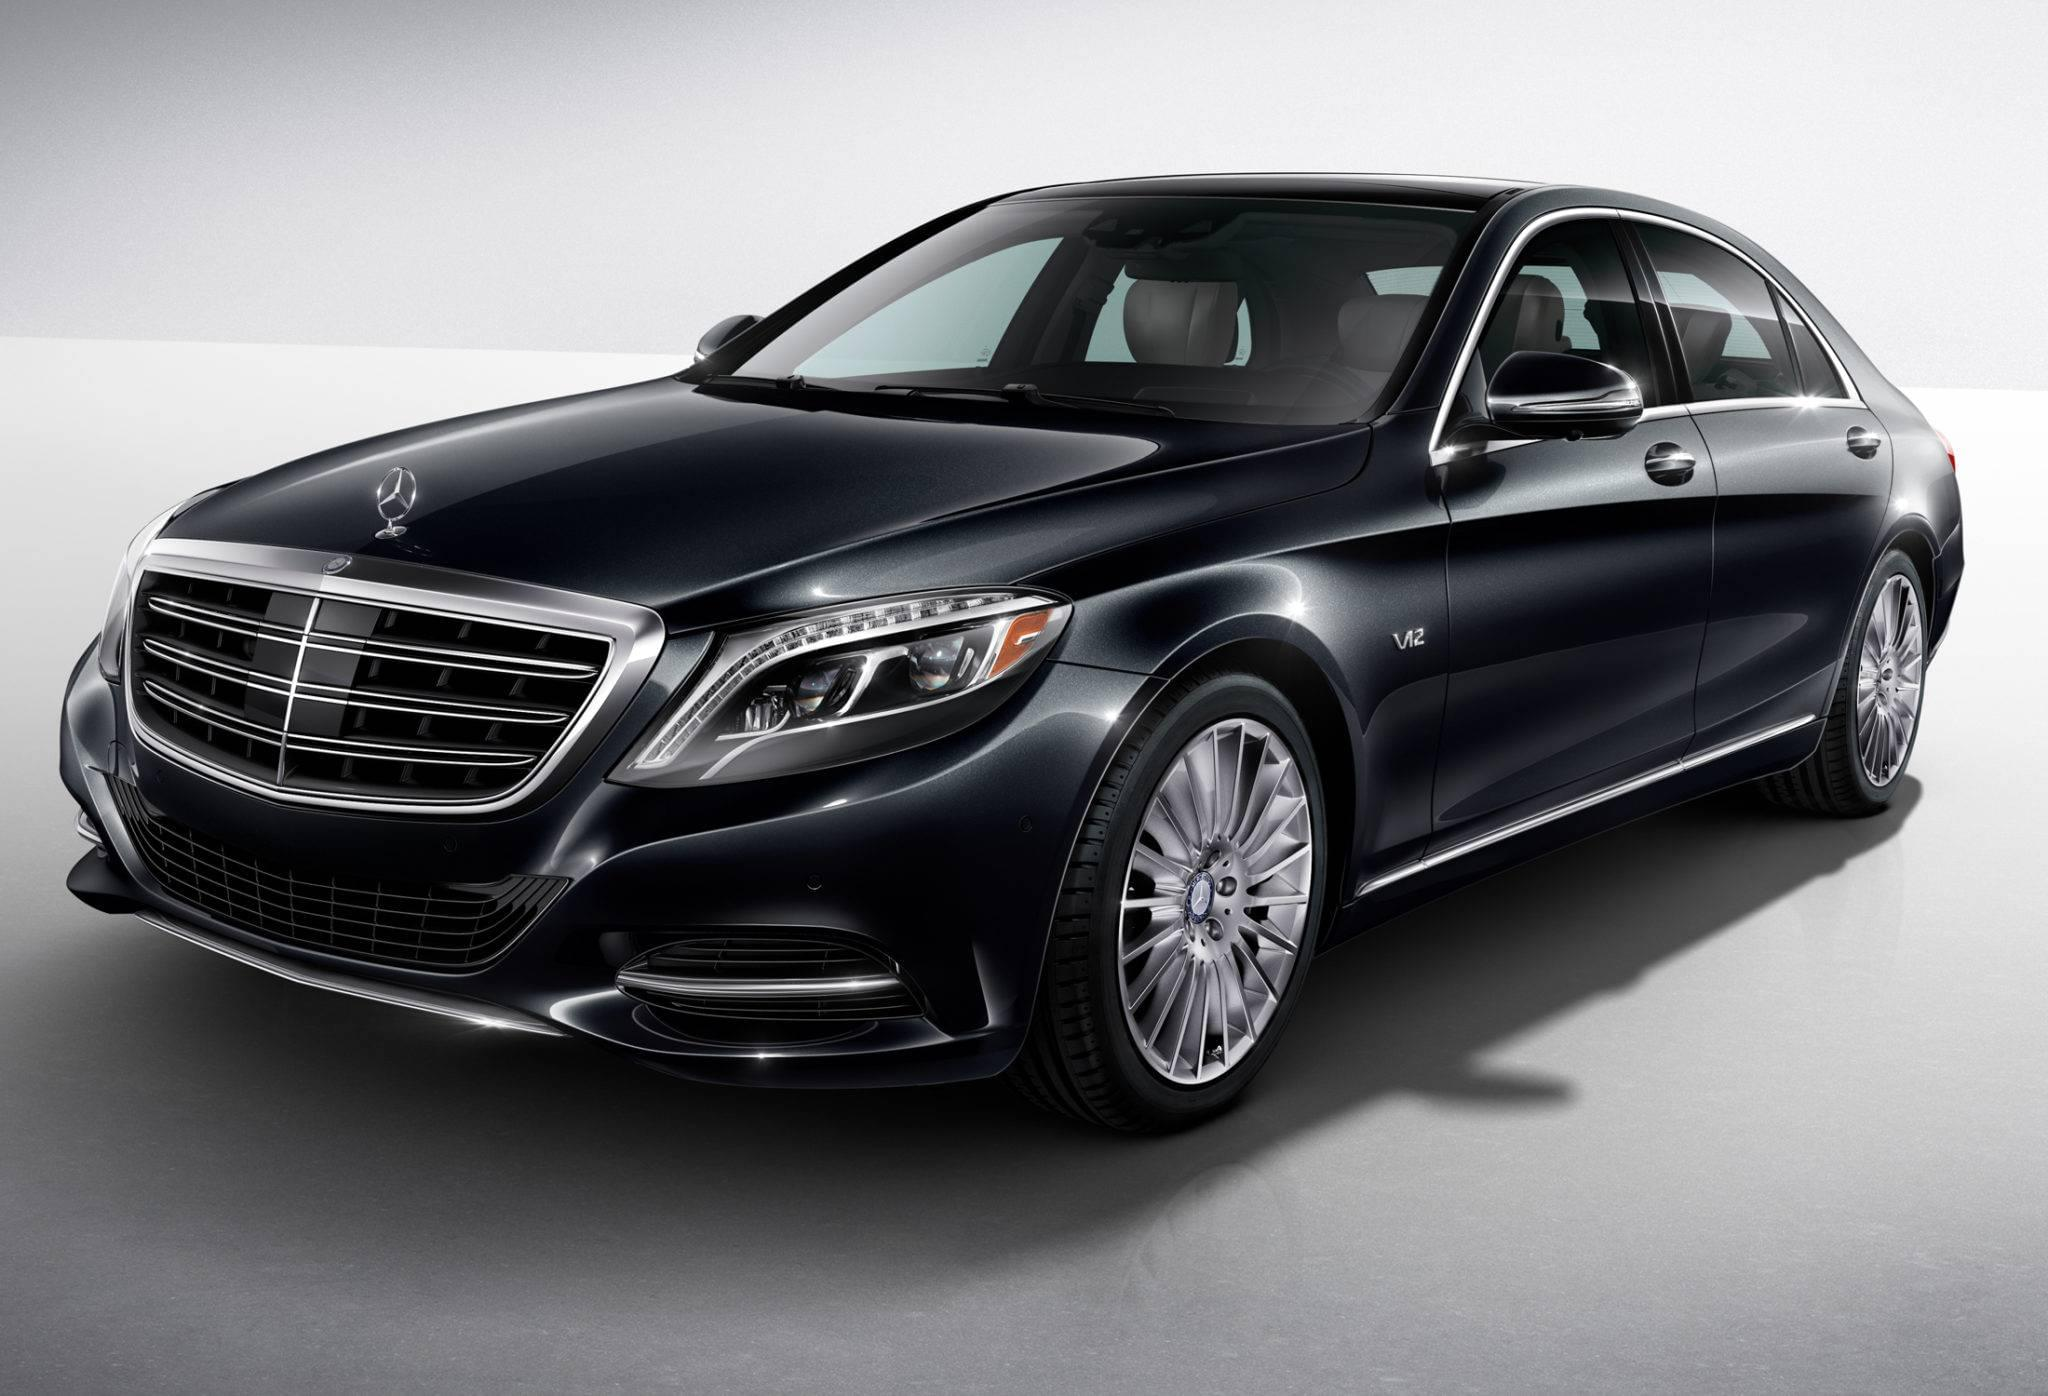 Certified Pre-Owned S-Class Special Financing Rates